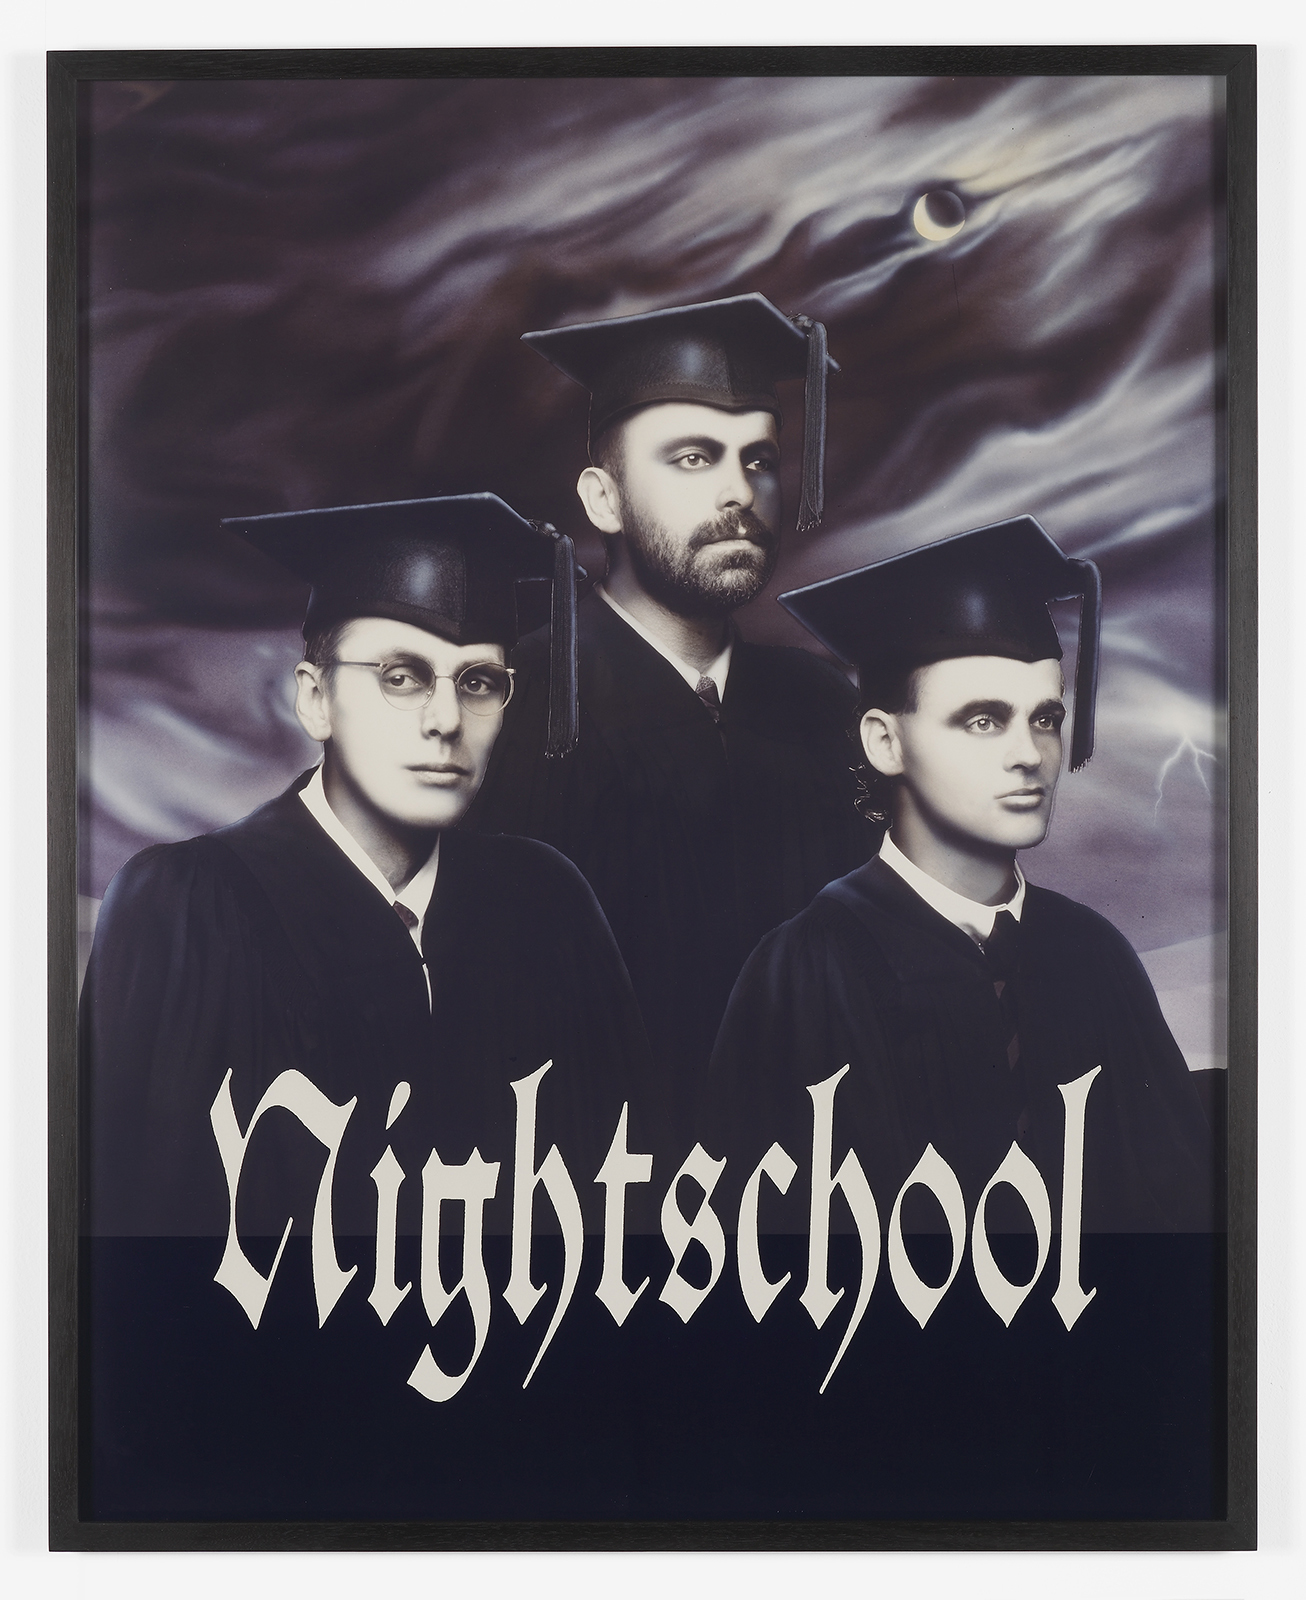 """Nightschool"" (1989) de General Idea. Laque sur vinyle, 225.4 x 160 cm."